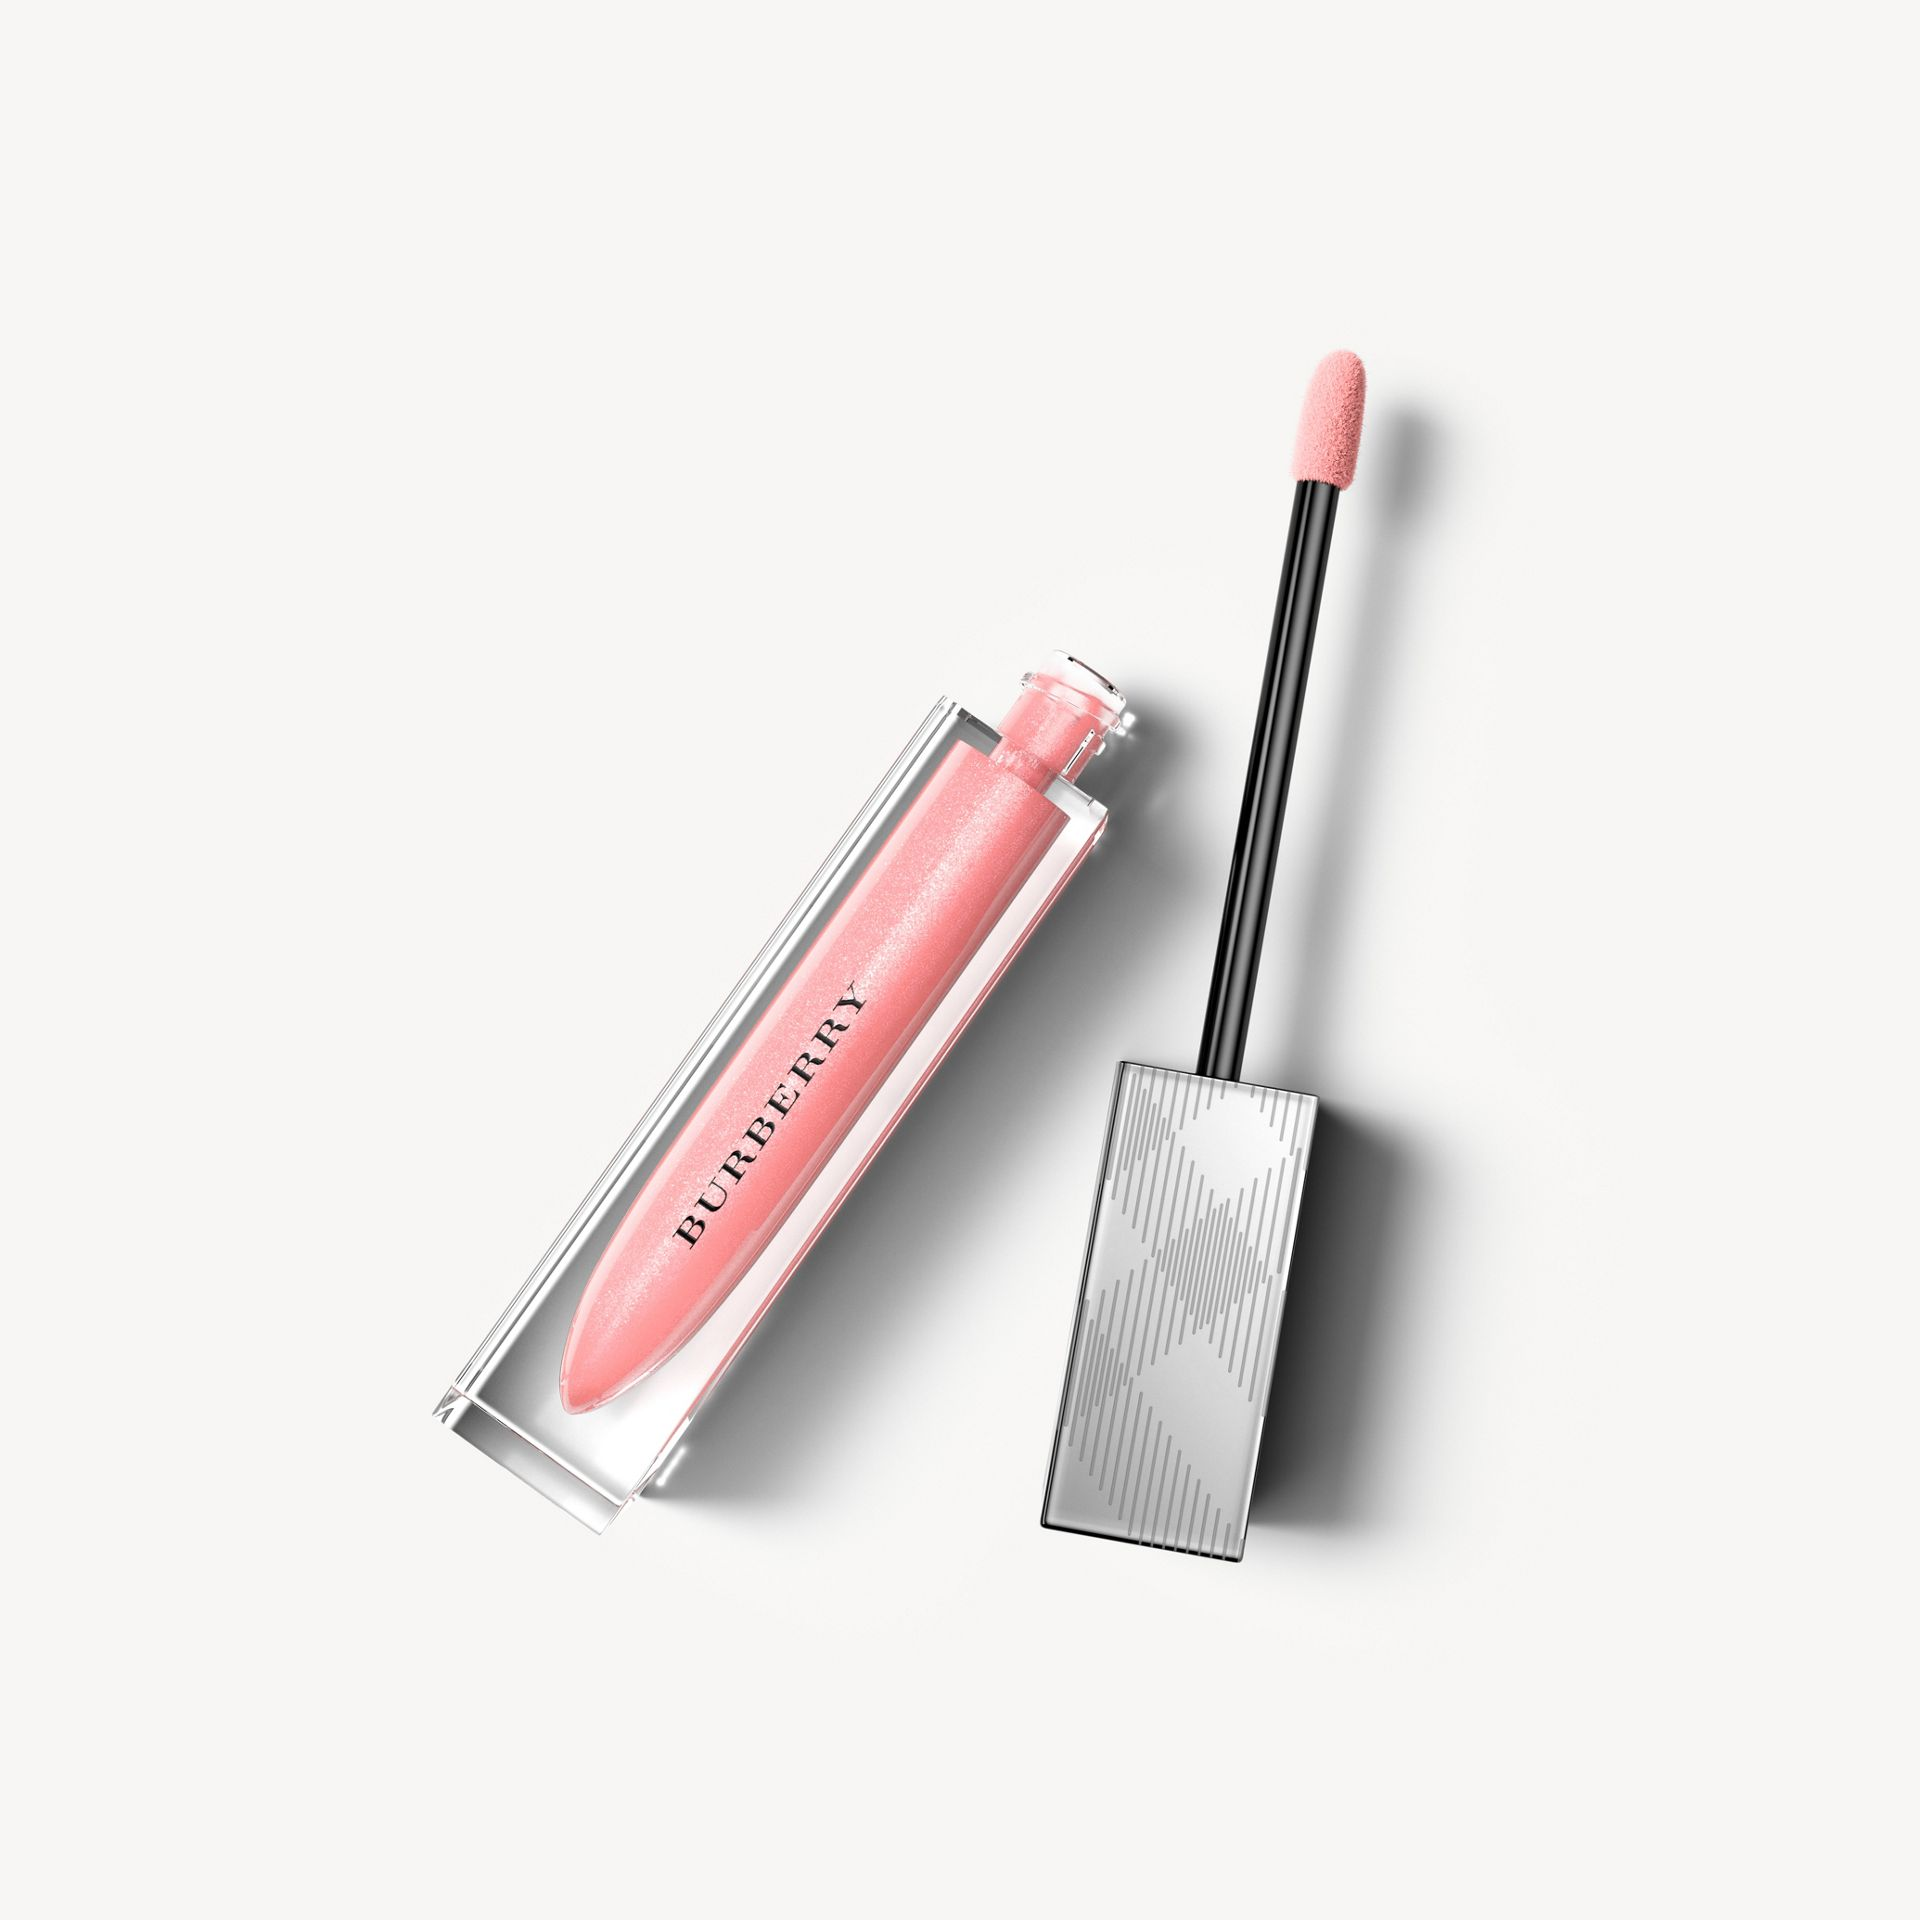 Burberry Kisses Gloss - Nude Pink No.25 - Donna | Burberry - immagine della galleria 1